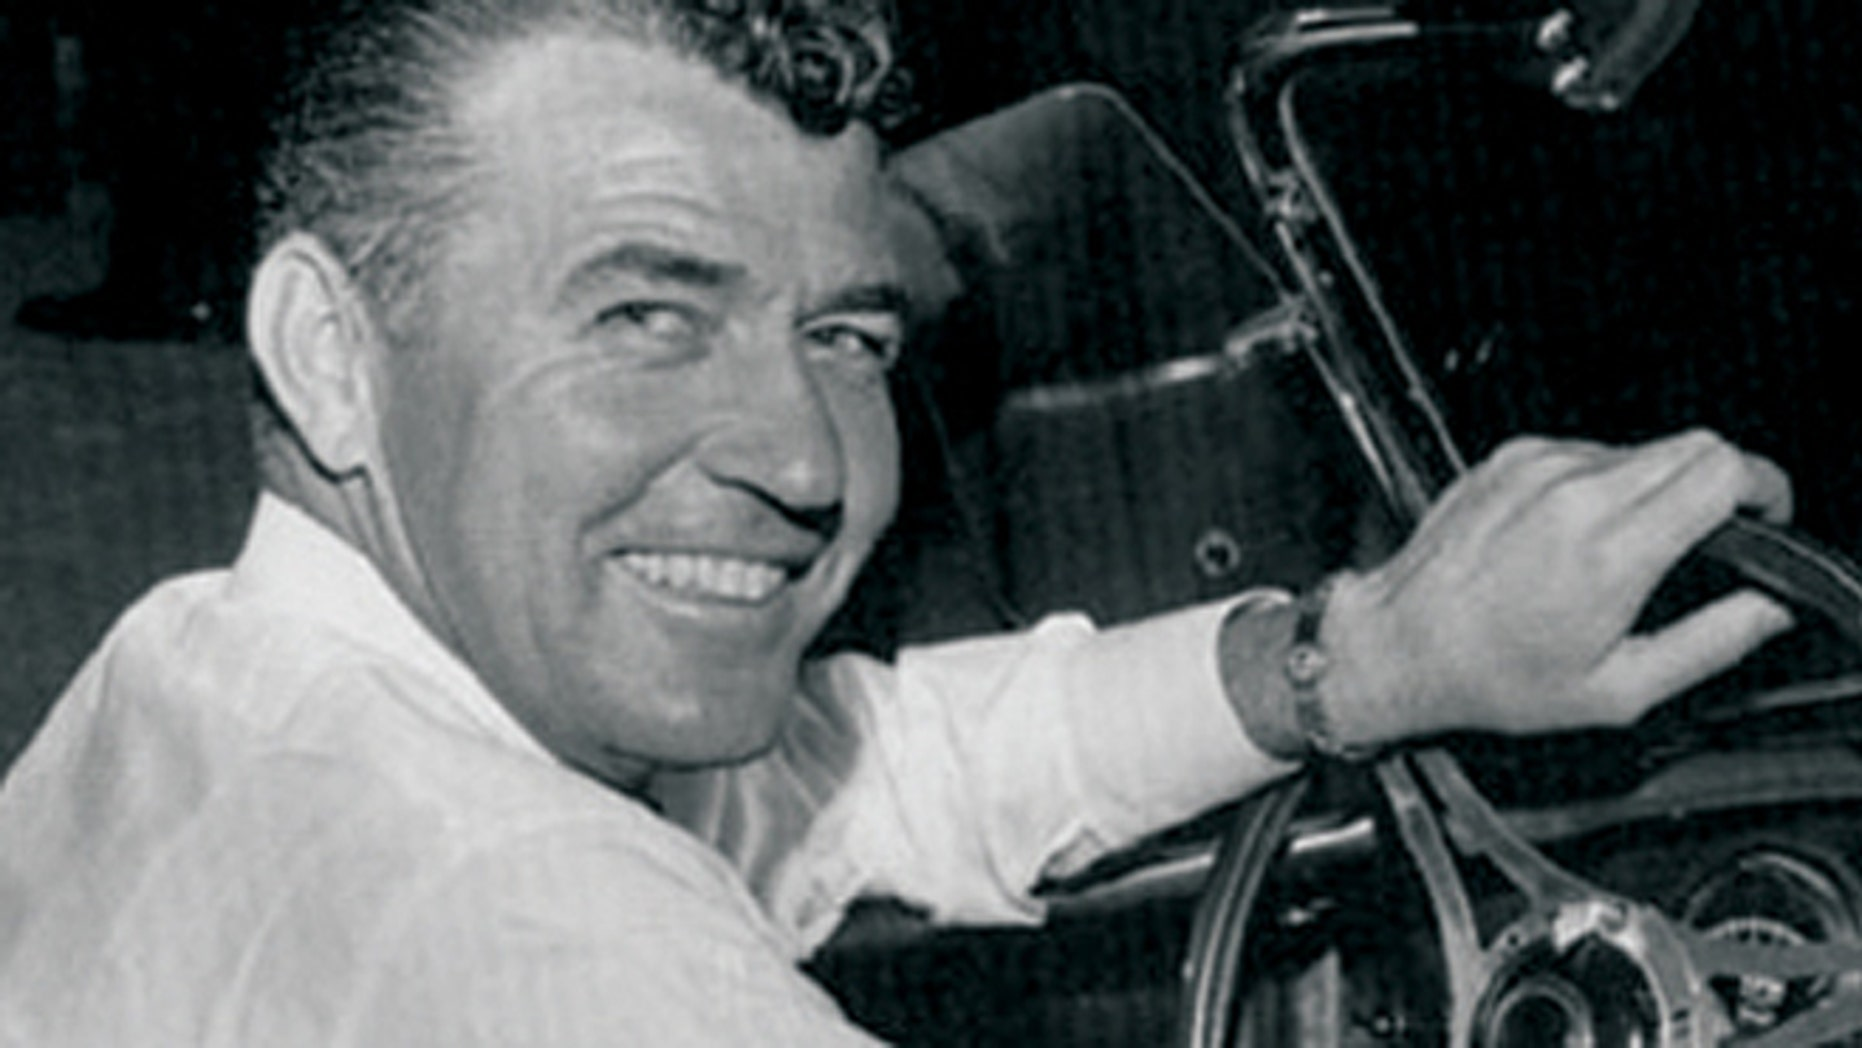 Carroll Shelby at the wheel of the original Shelby Cobra